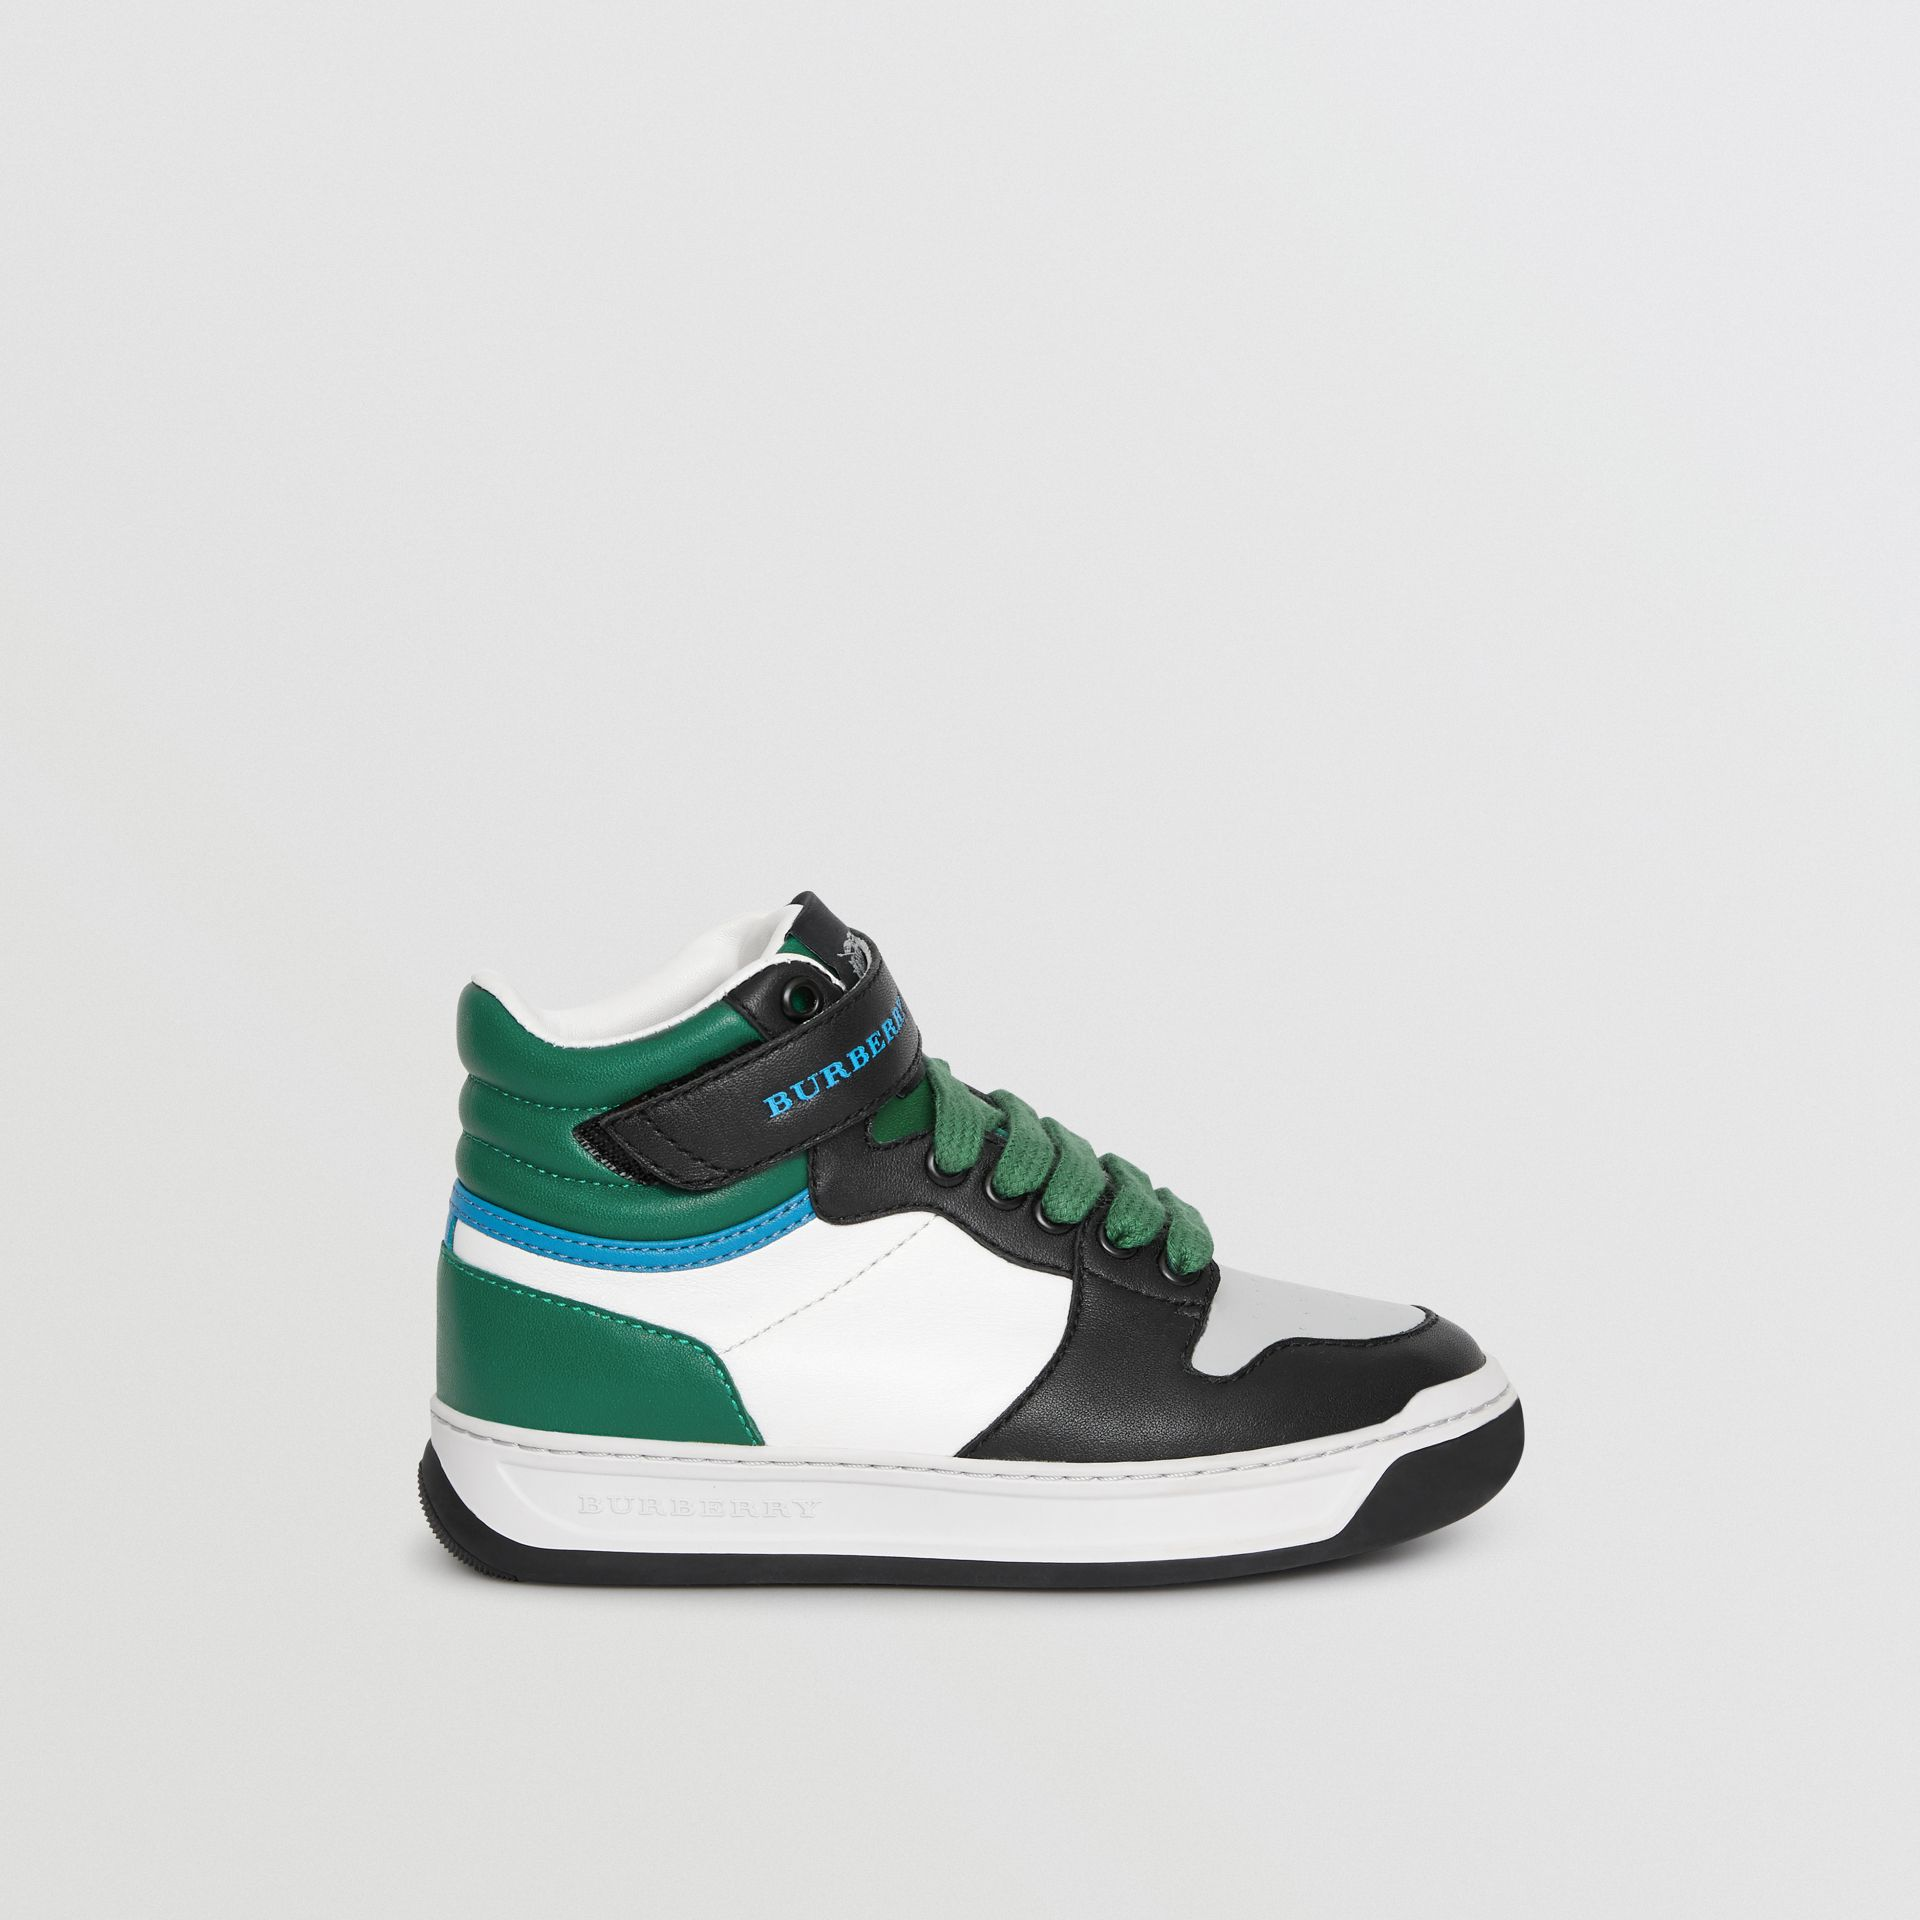 Colour Block Leather High-top Sneakers in Viridian Green - Children | Burberry Canada - gallery image 3